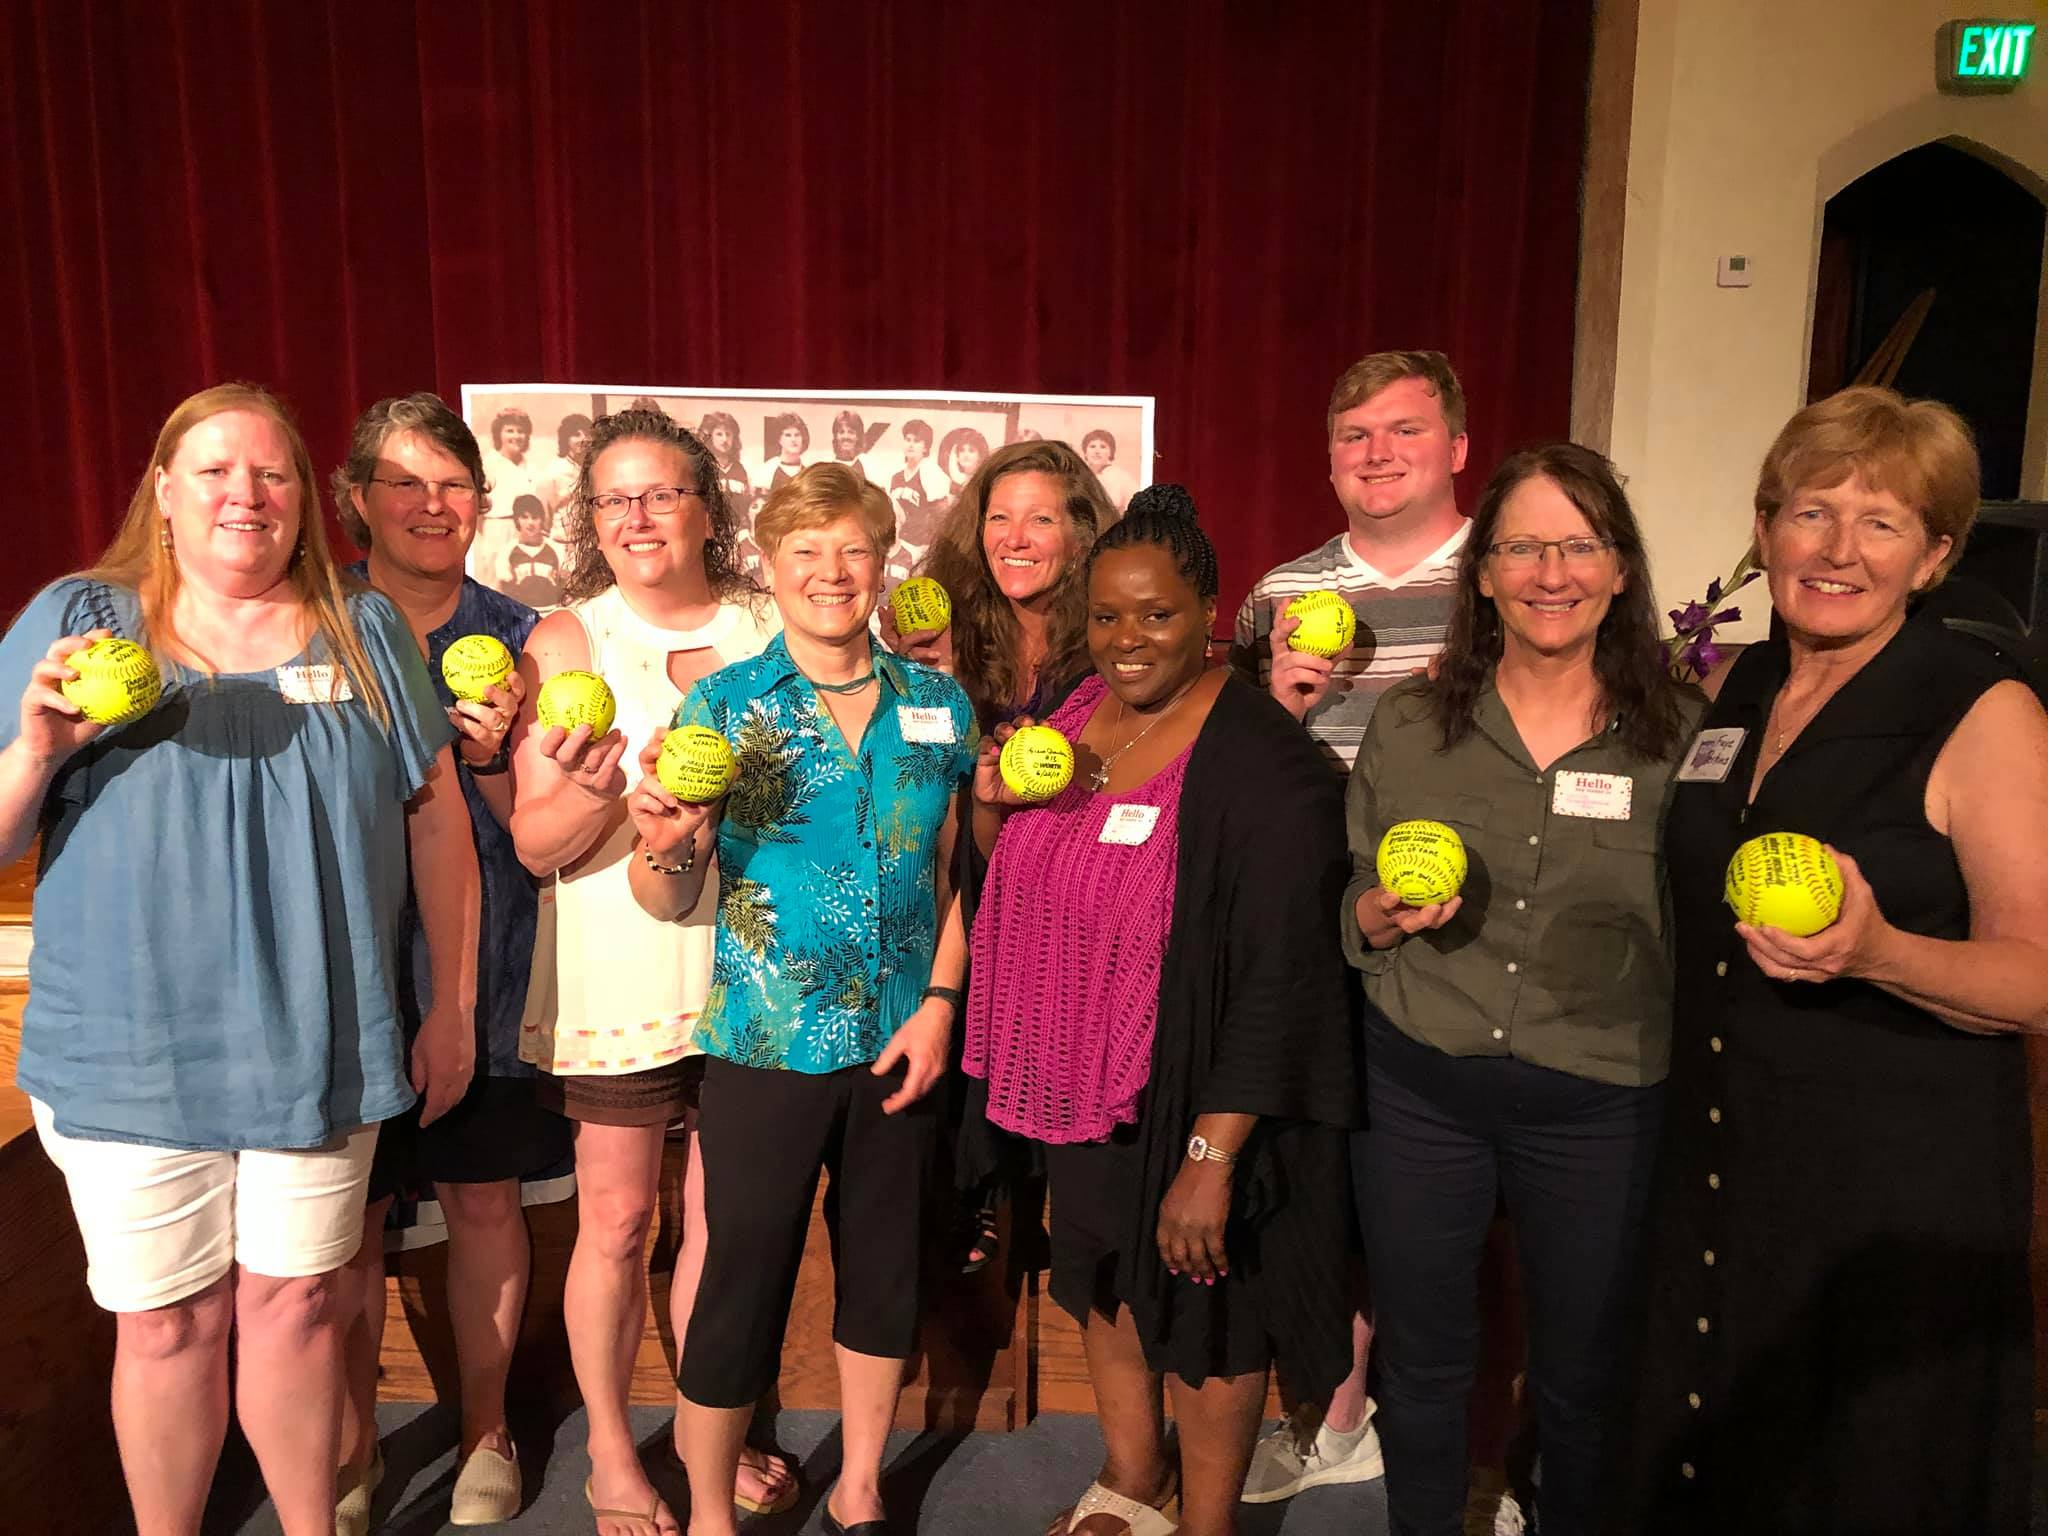 Womens Softball Team 1985 Athletic HOF award winners.jpg